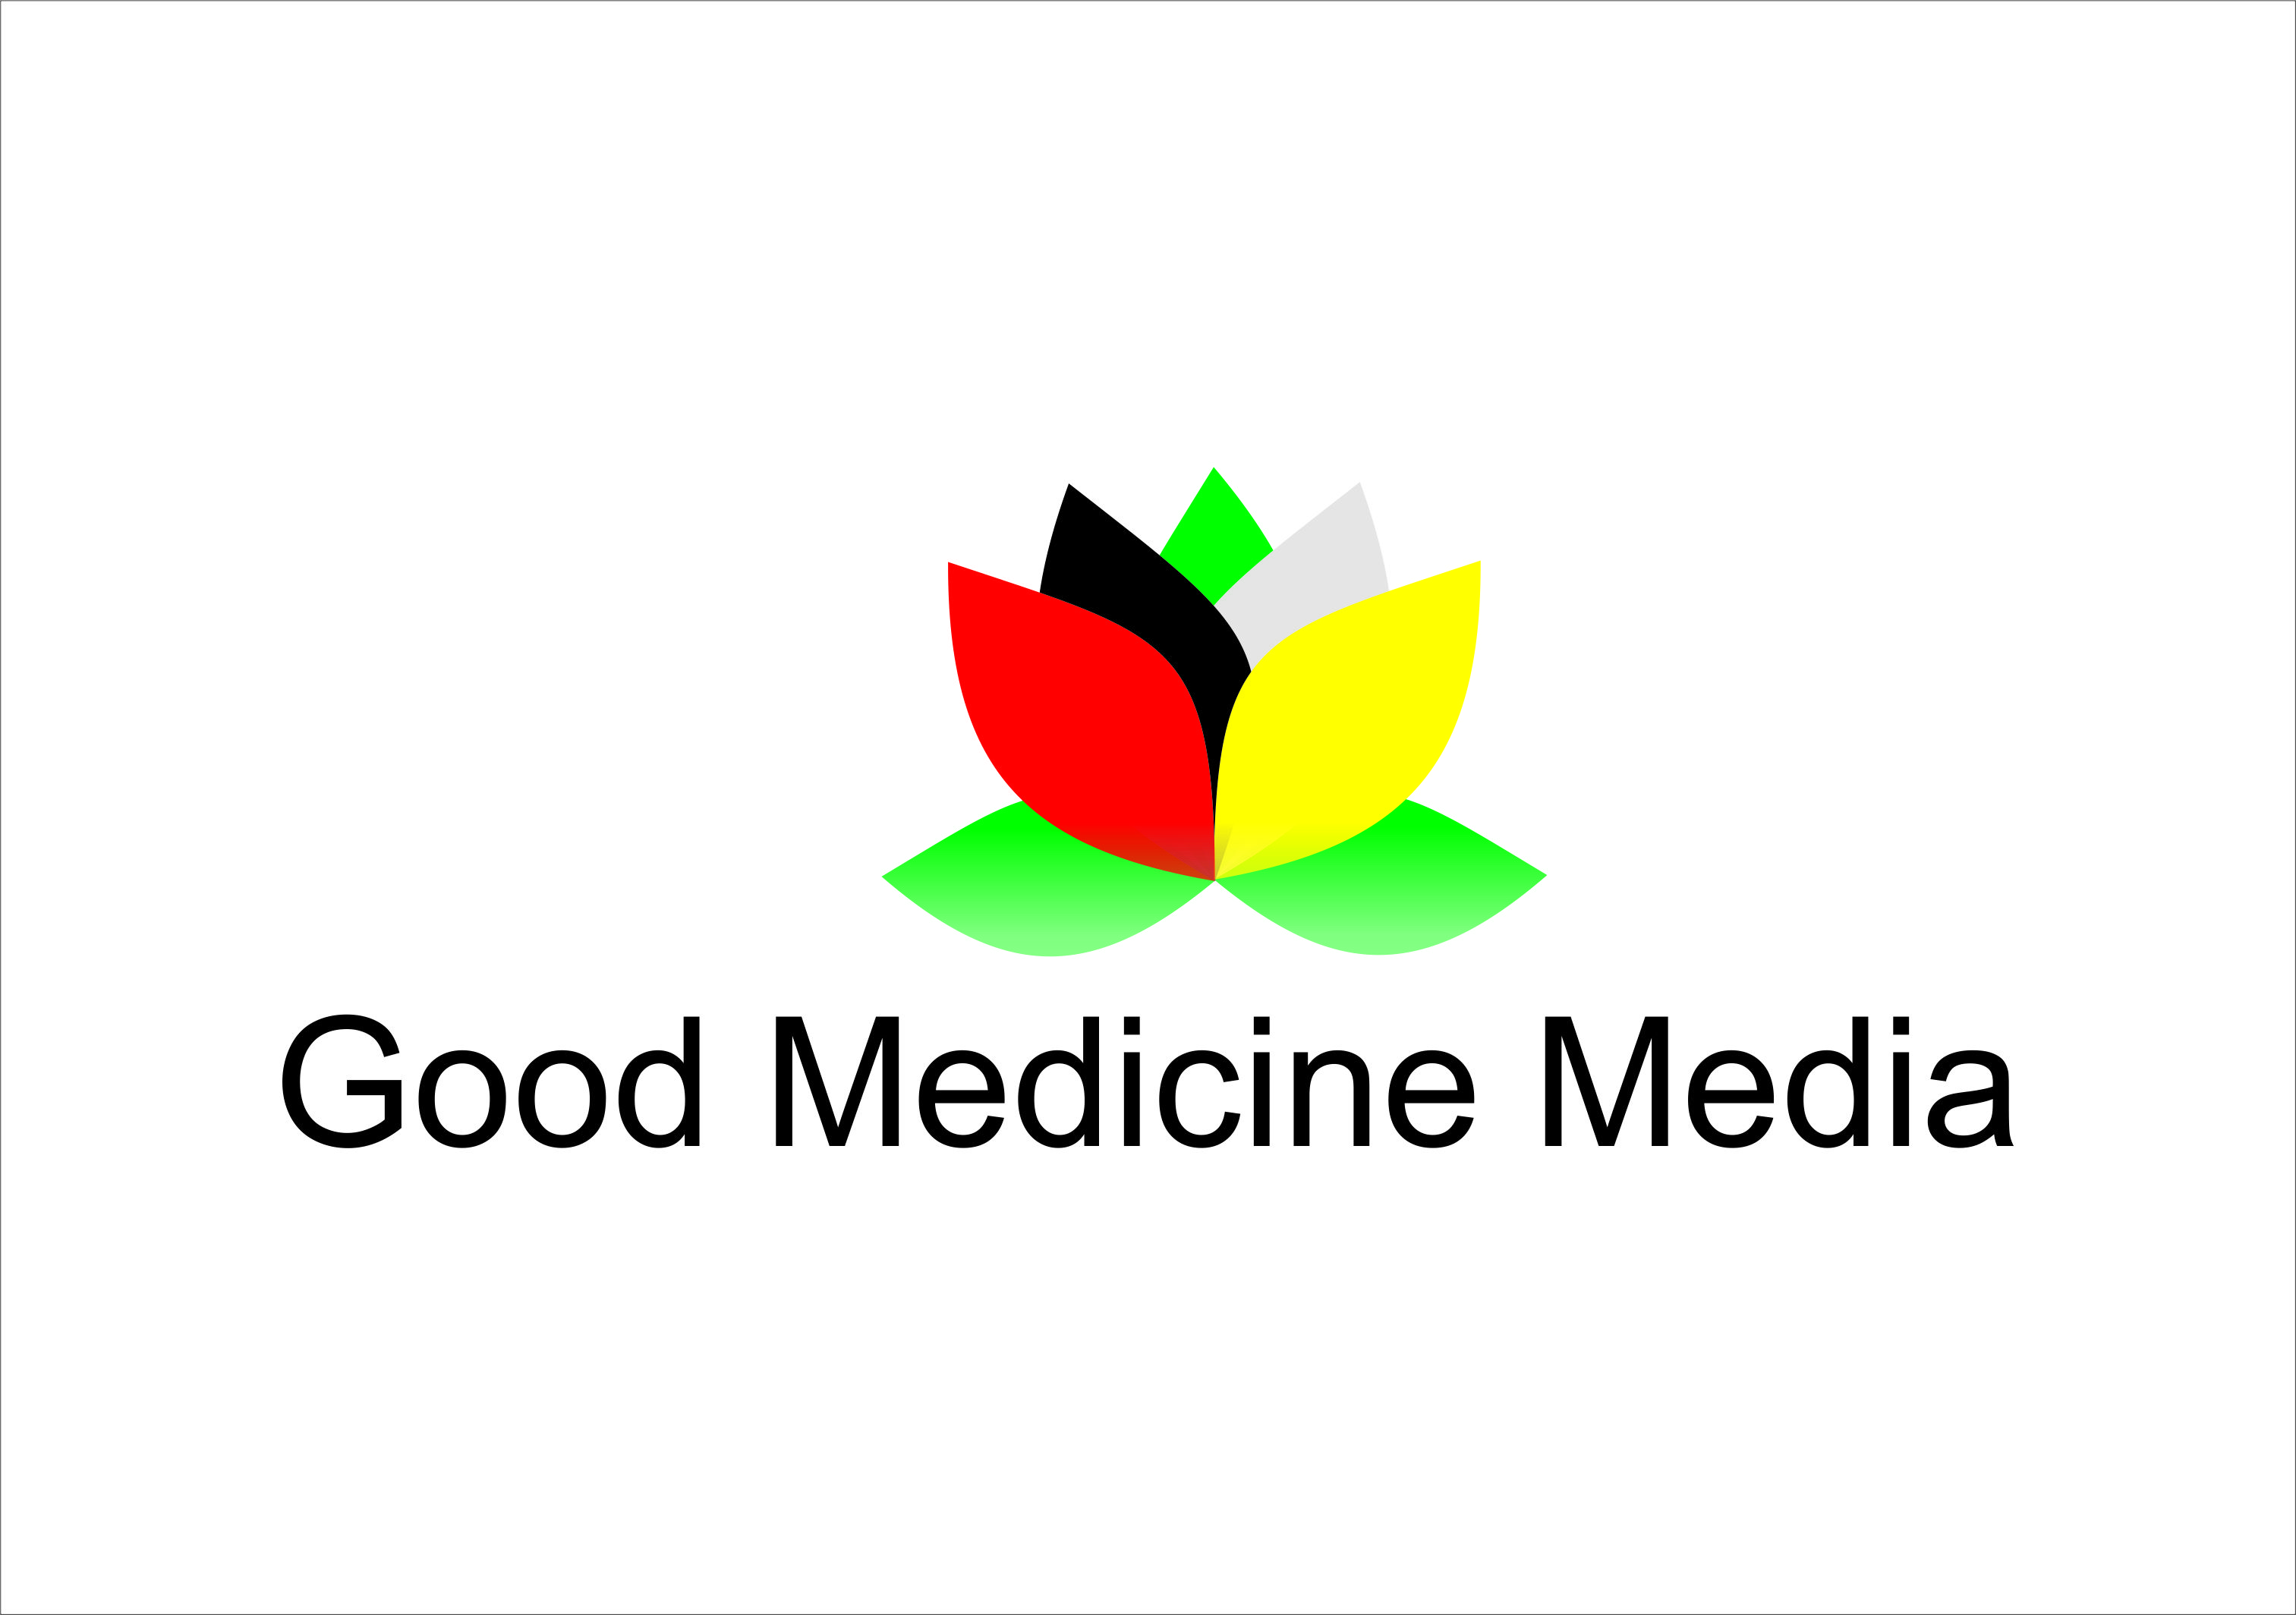 Logo Design by Agus Martoyo - Entry No. 199 in the Logo Design Contest Good Medicine Media Logo Design.